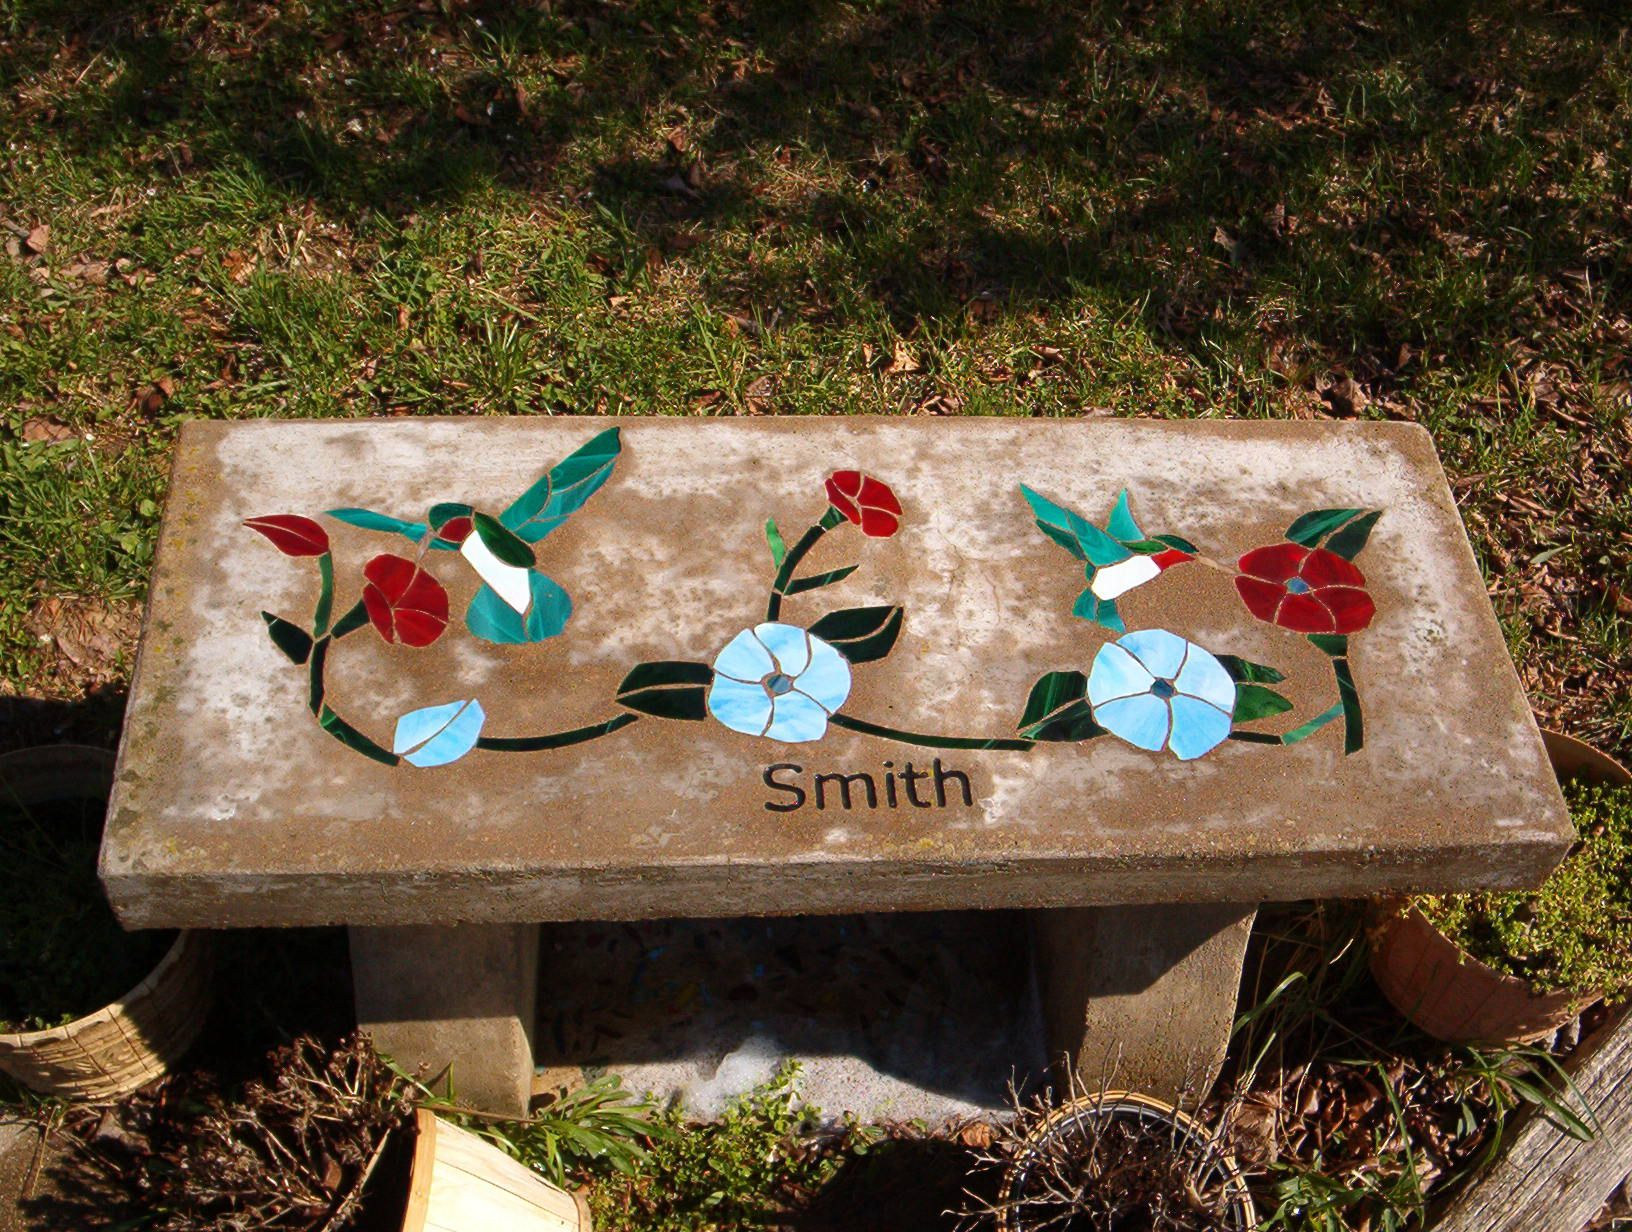 Concrete Bench Ideas Part - 44: Stained Glass Concrete Bench With Hummingbirds